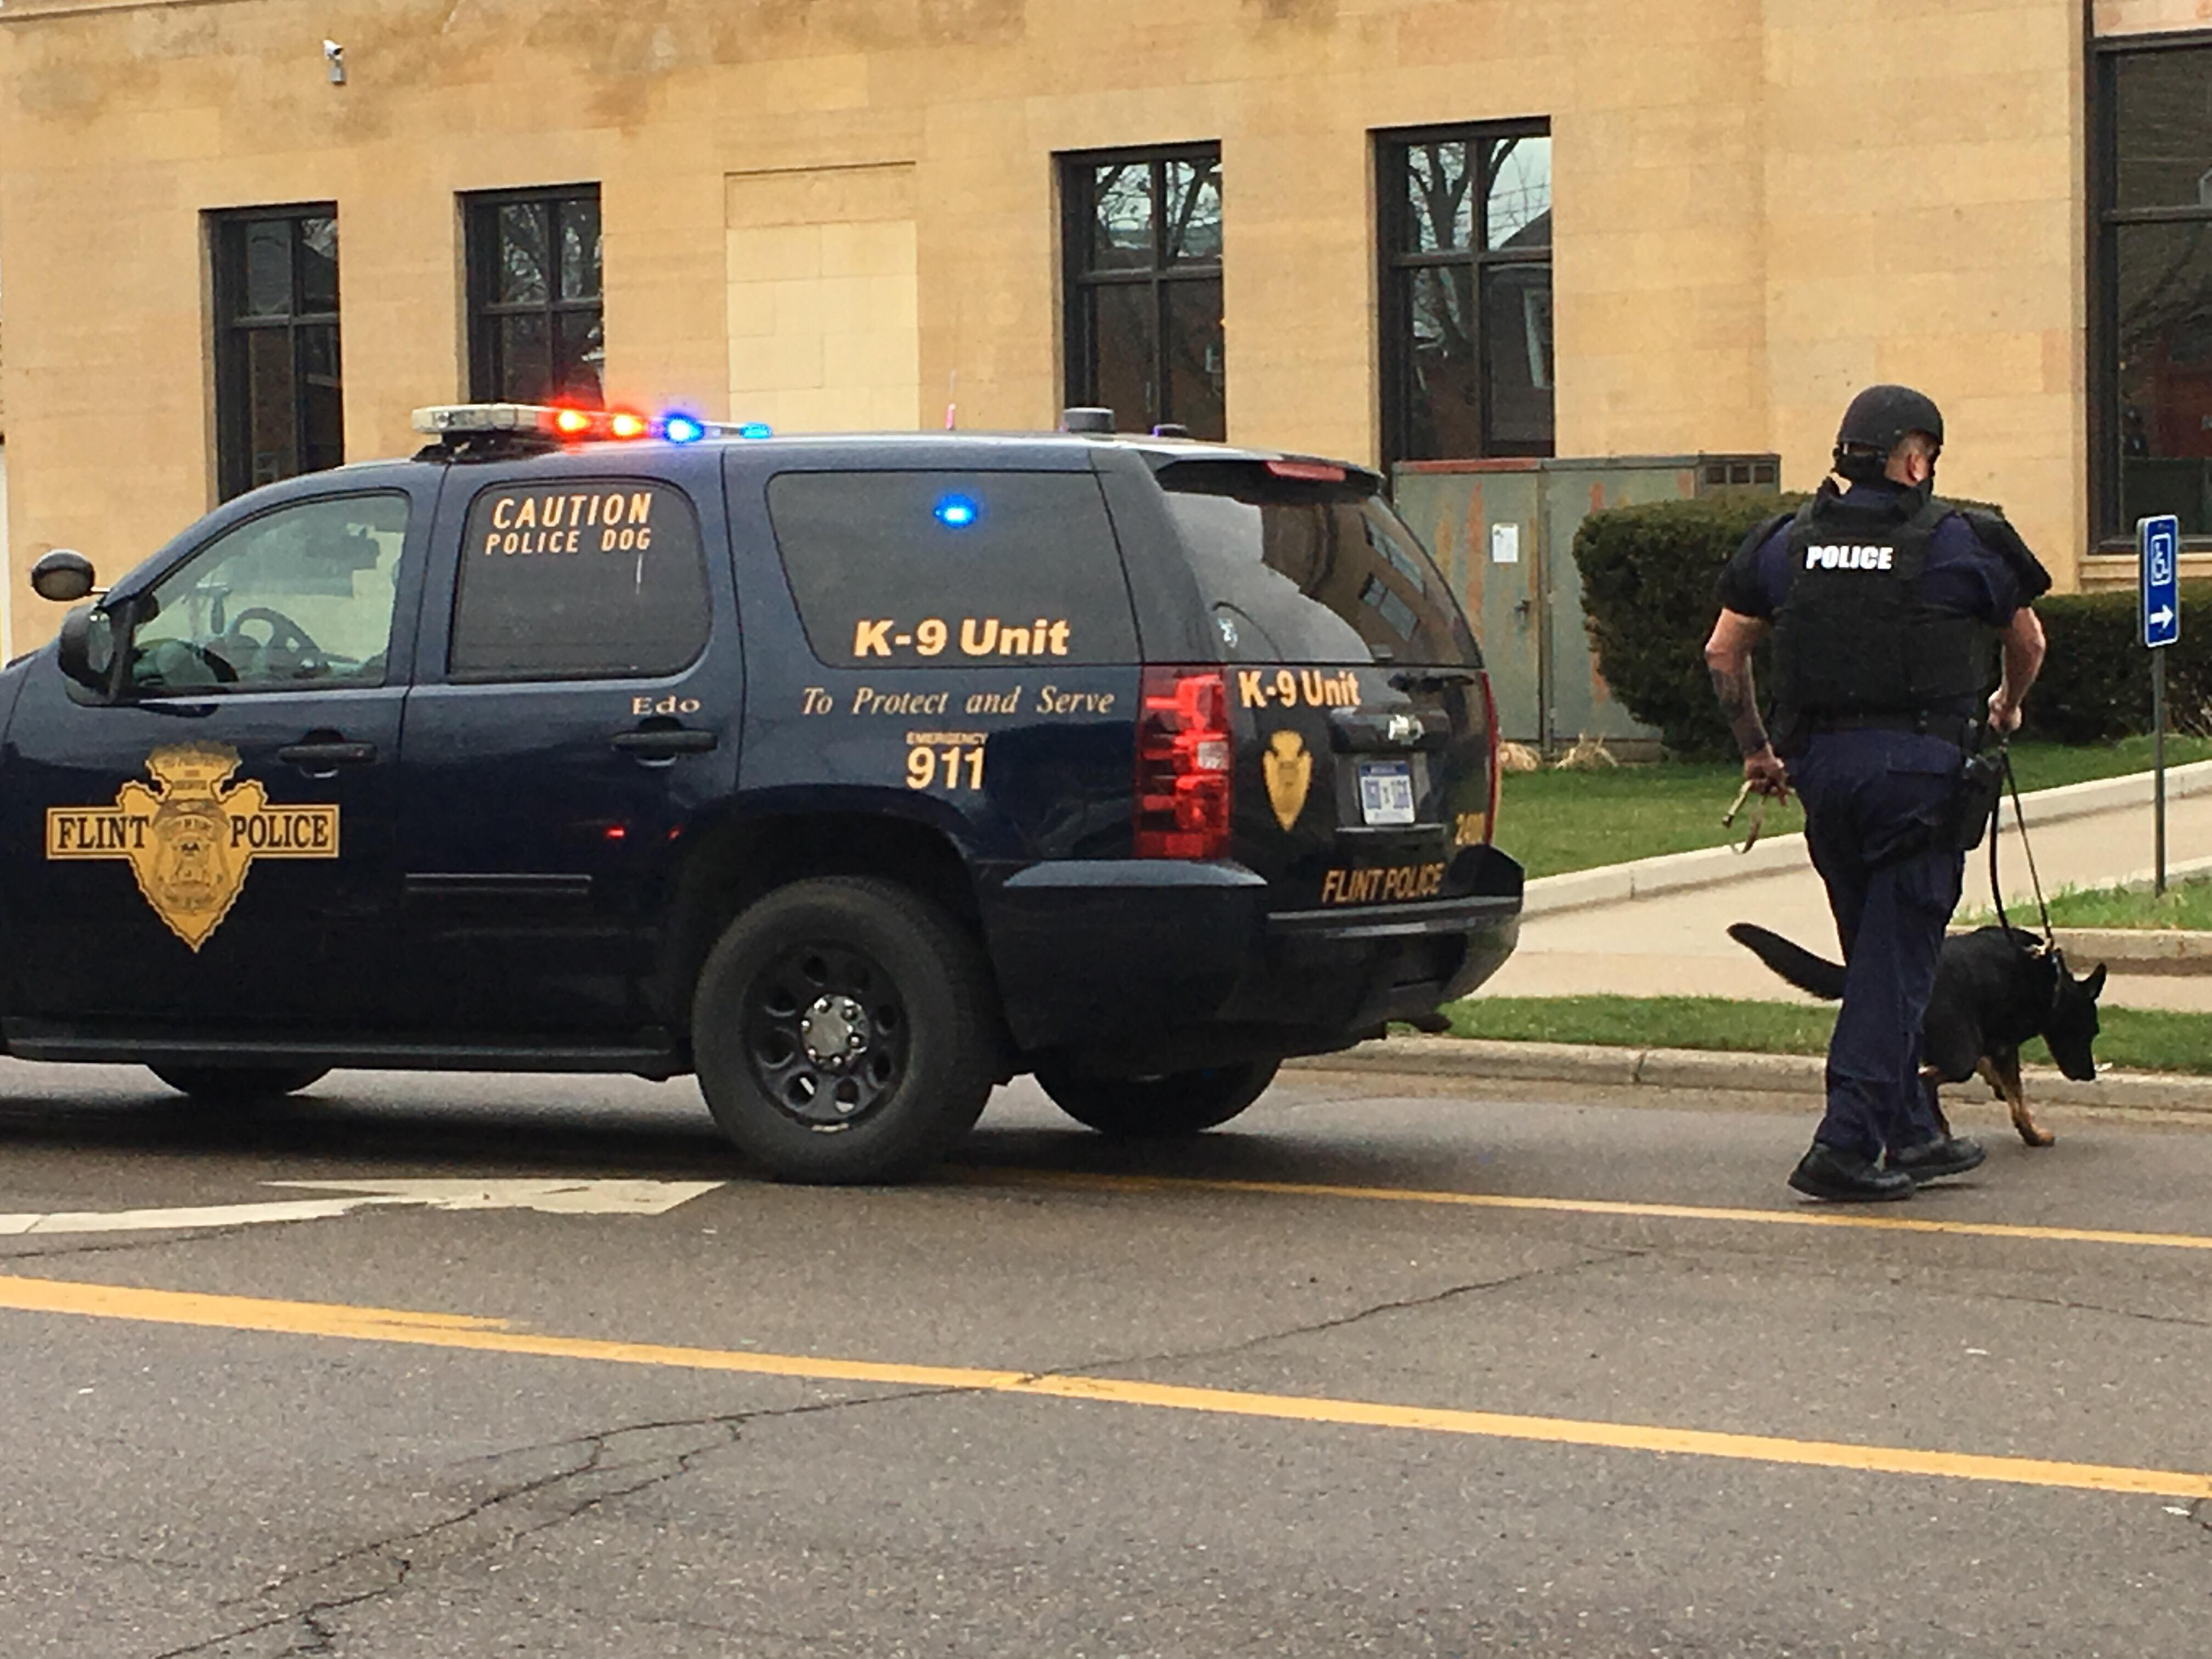 A suspicious package was found at the Federal Building in Flint. (Photo Credit: Courtney Wheaton)